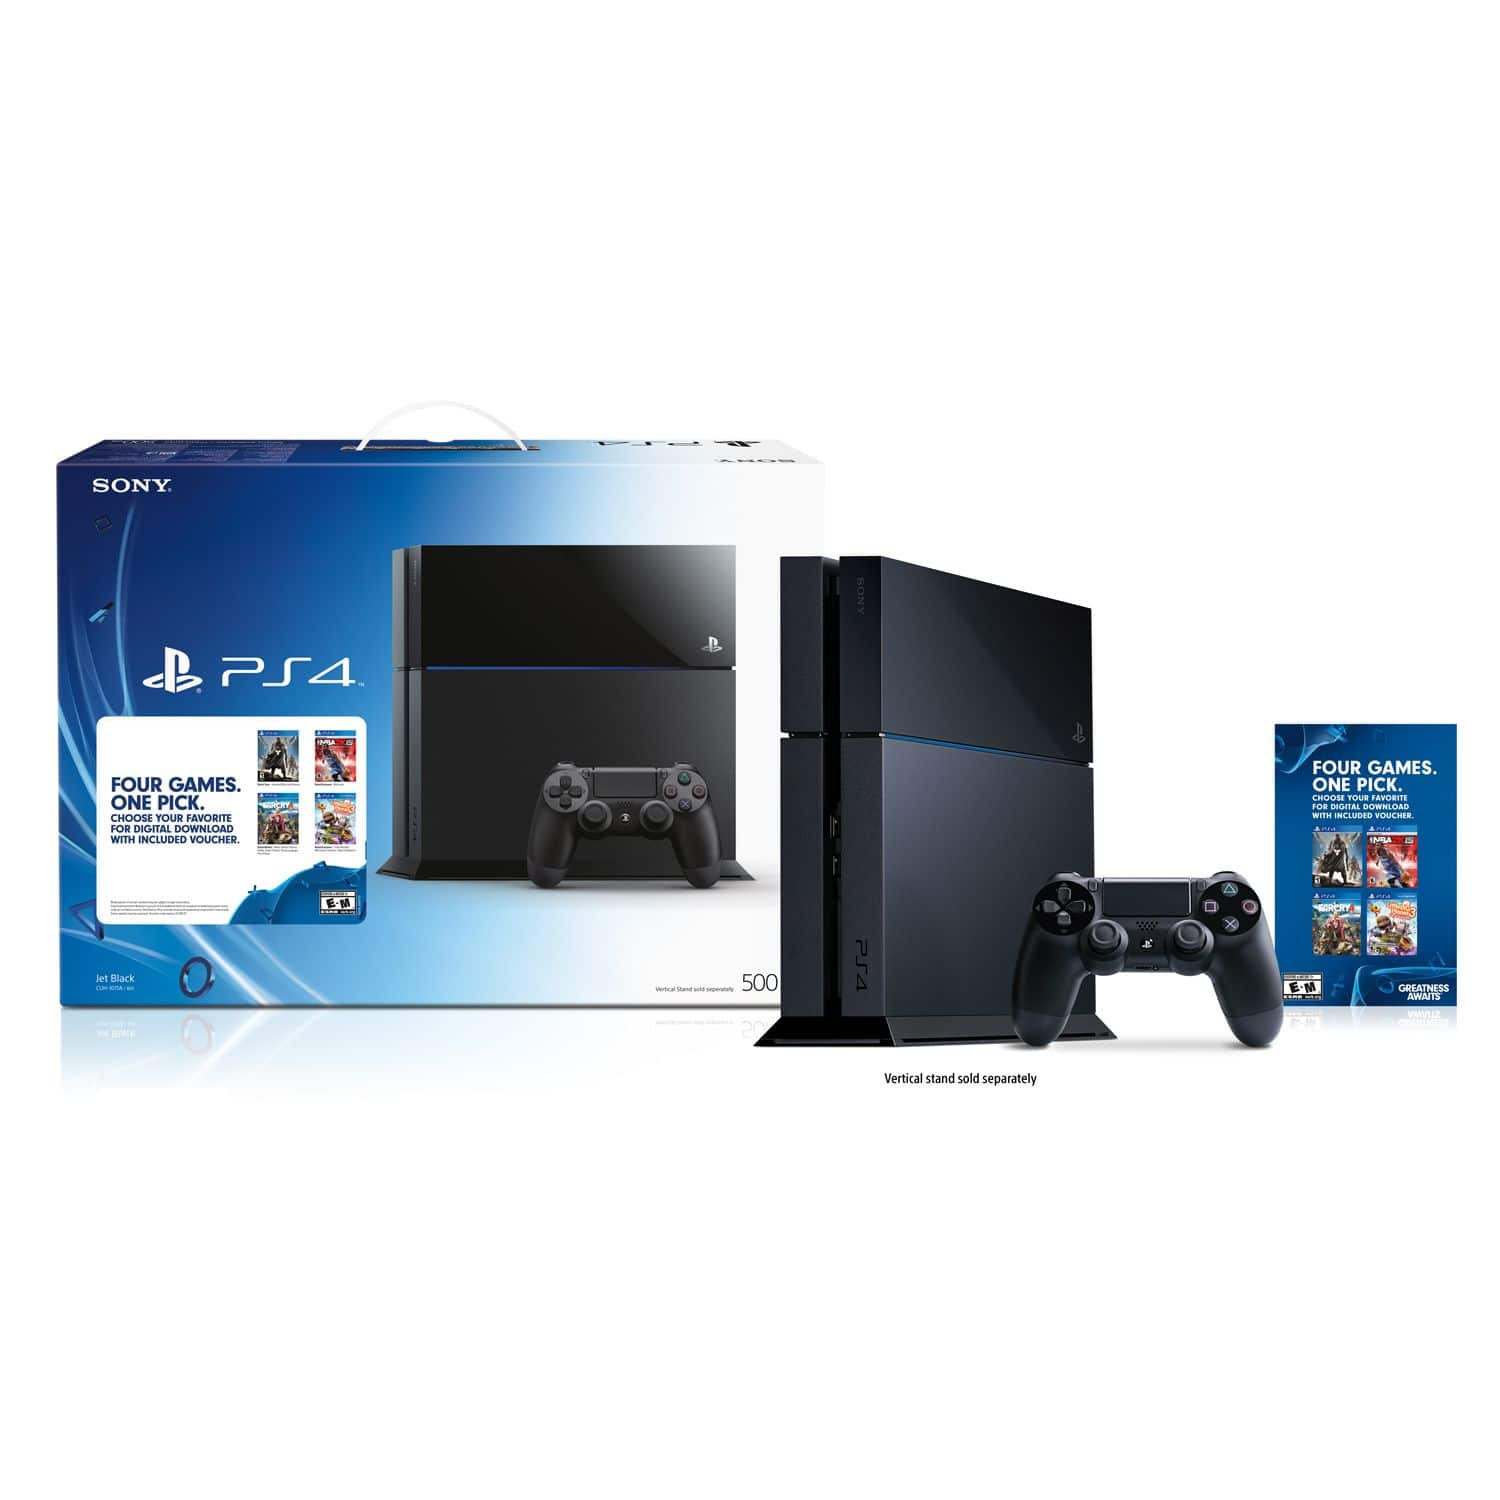 PS4 - Best Buy - Four Games One Pick Bundle - Black for $349 (Choose one game: Destiny, NBA 2K15, LittleBigPlanet 3 or Far Cry 4)